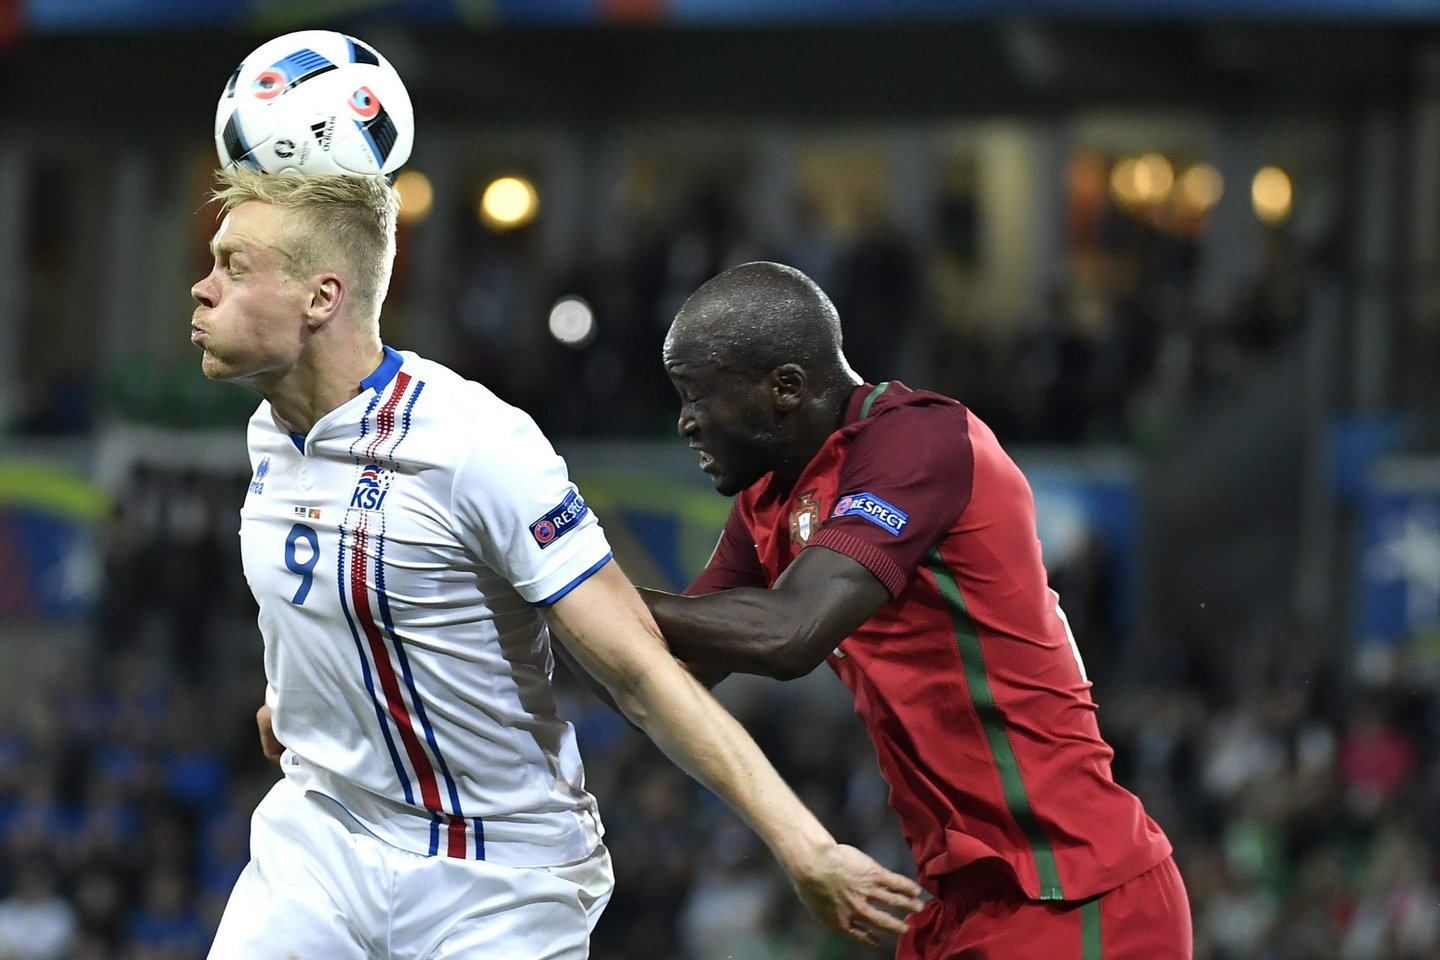 Iceland's forward Kolbeinn Sigthorsson is tackled by Portugal's midfielder Danilo Pereira during the Euro 2016 group F football match between Portugal and Iceland at the Geoffroy-Guichard stadium in Saint-Etienne on June 14, 2016. / AFP / jeff pachoud (Photo credit should read JEFF PACHOUD/AFP/Getty Images)